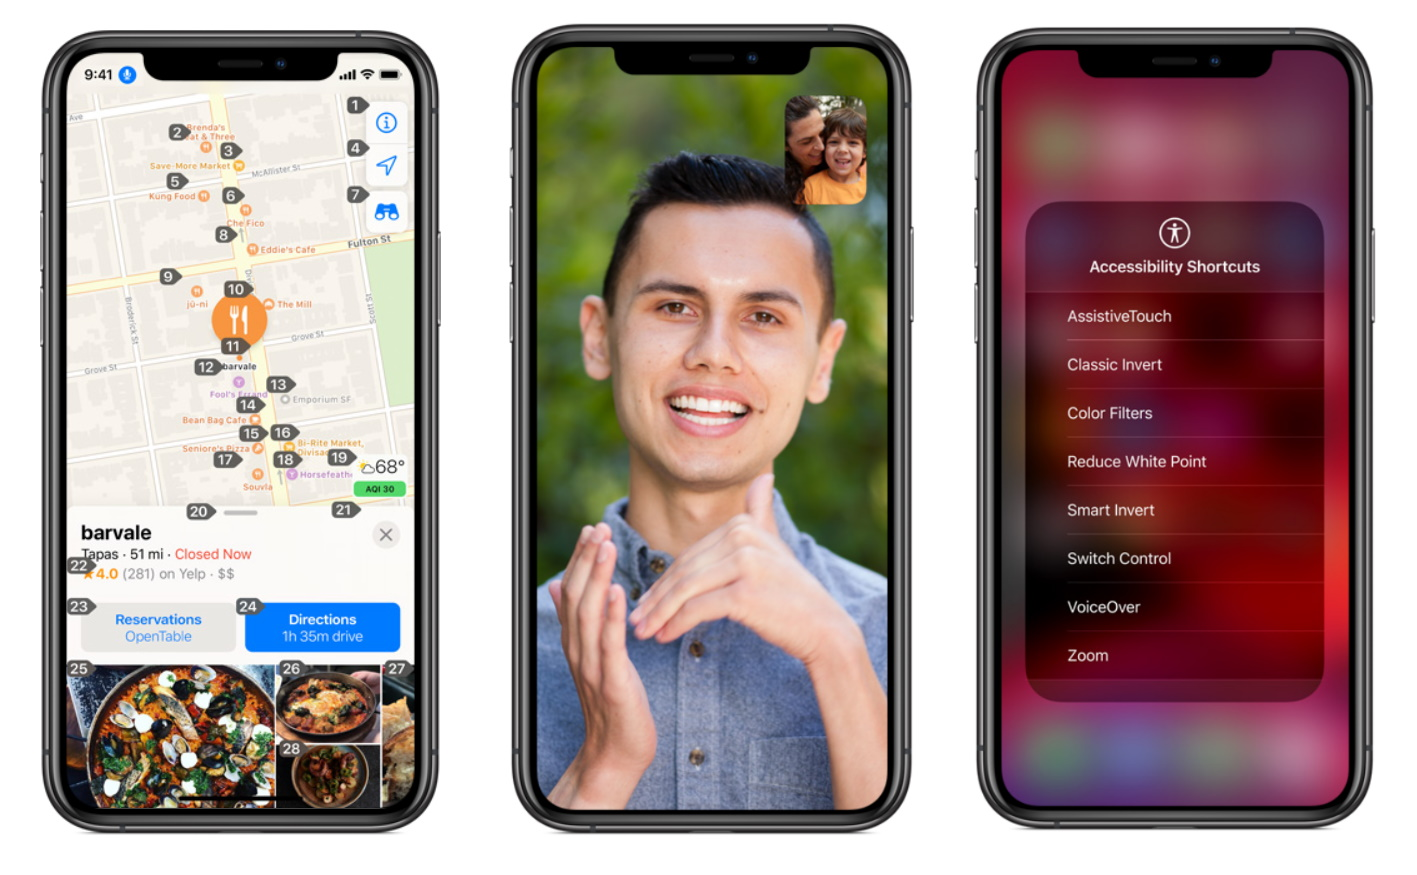 Accessibility features on the Apple iPhone